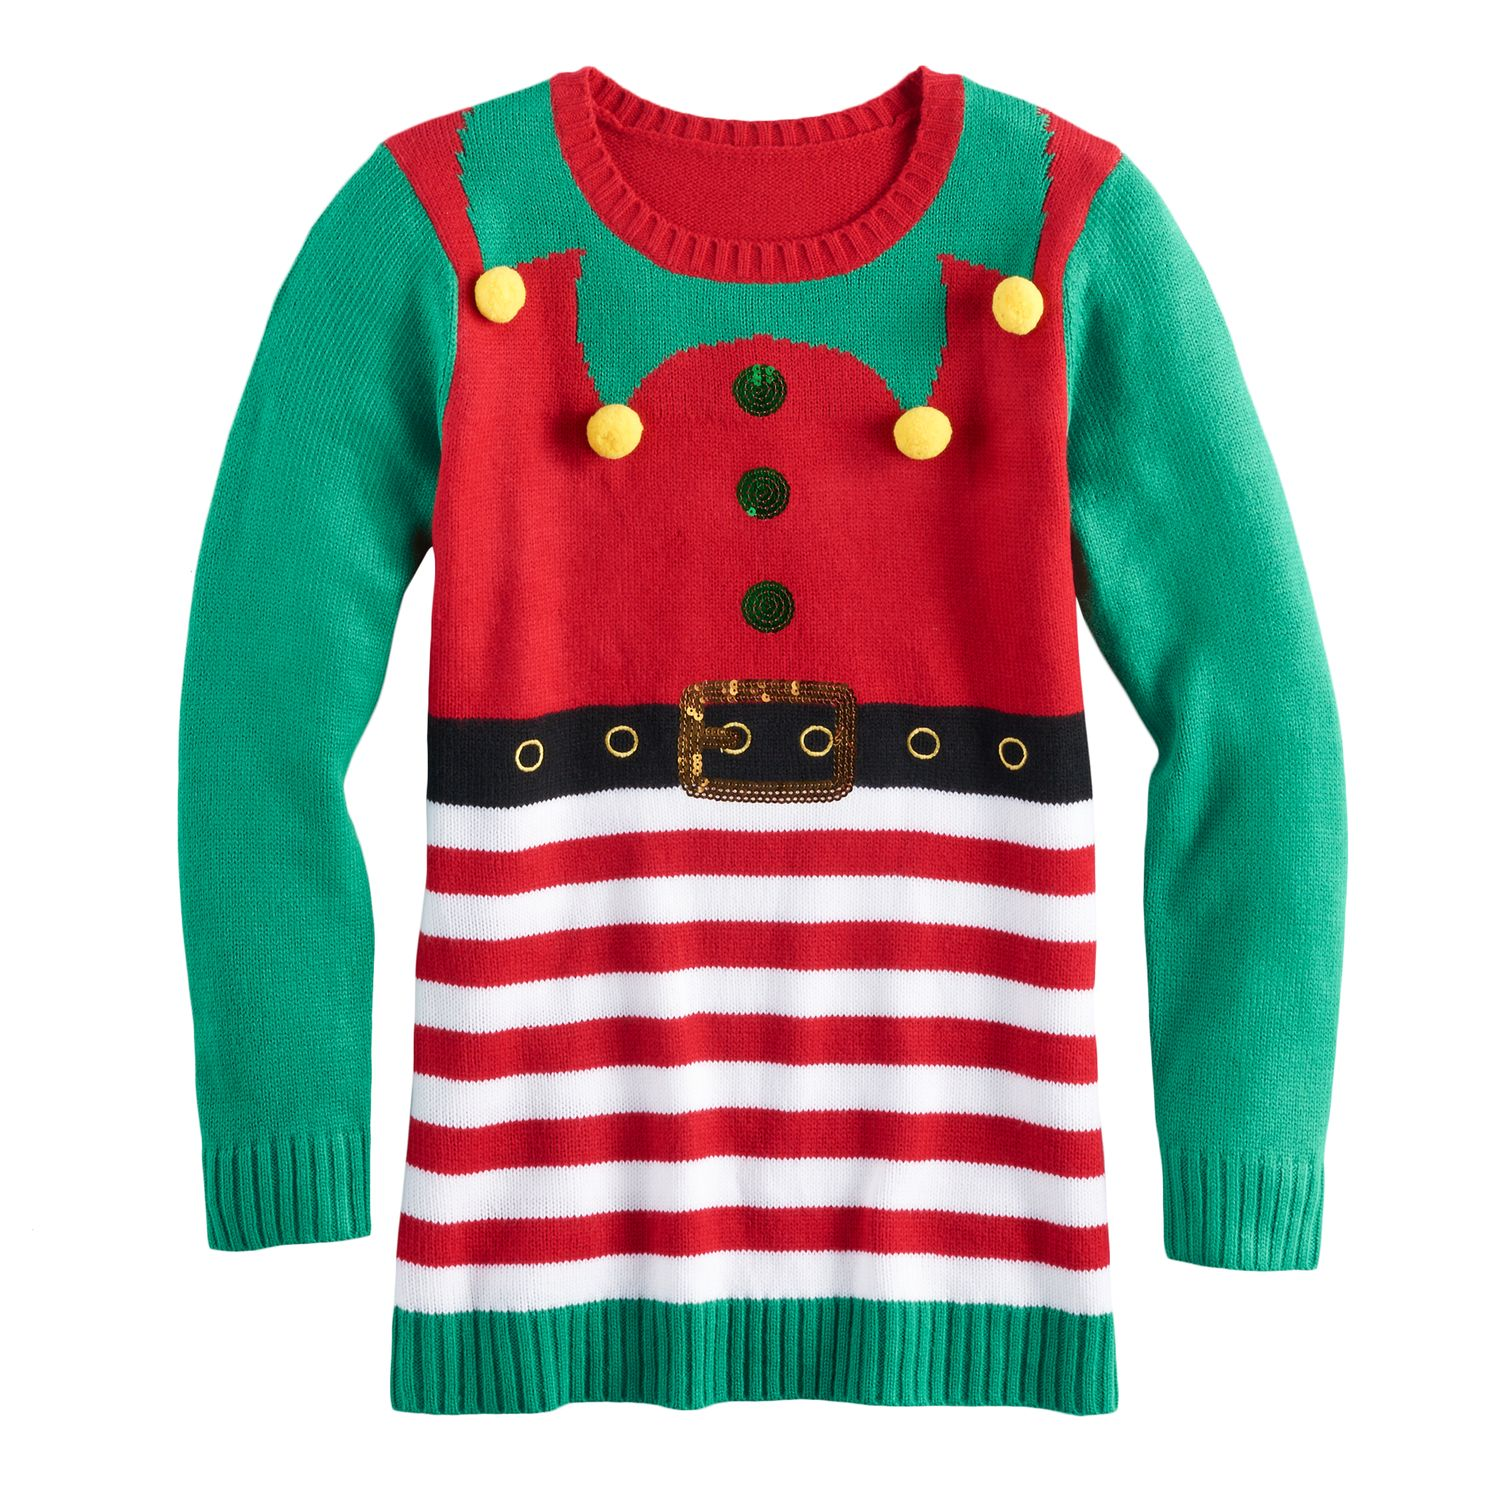 Girls 7-16 \u0026 Plus Size It\u0027s Our Time Embellished Ugly Christmas Tunic Sweater